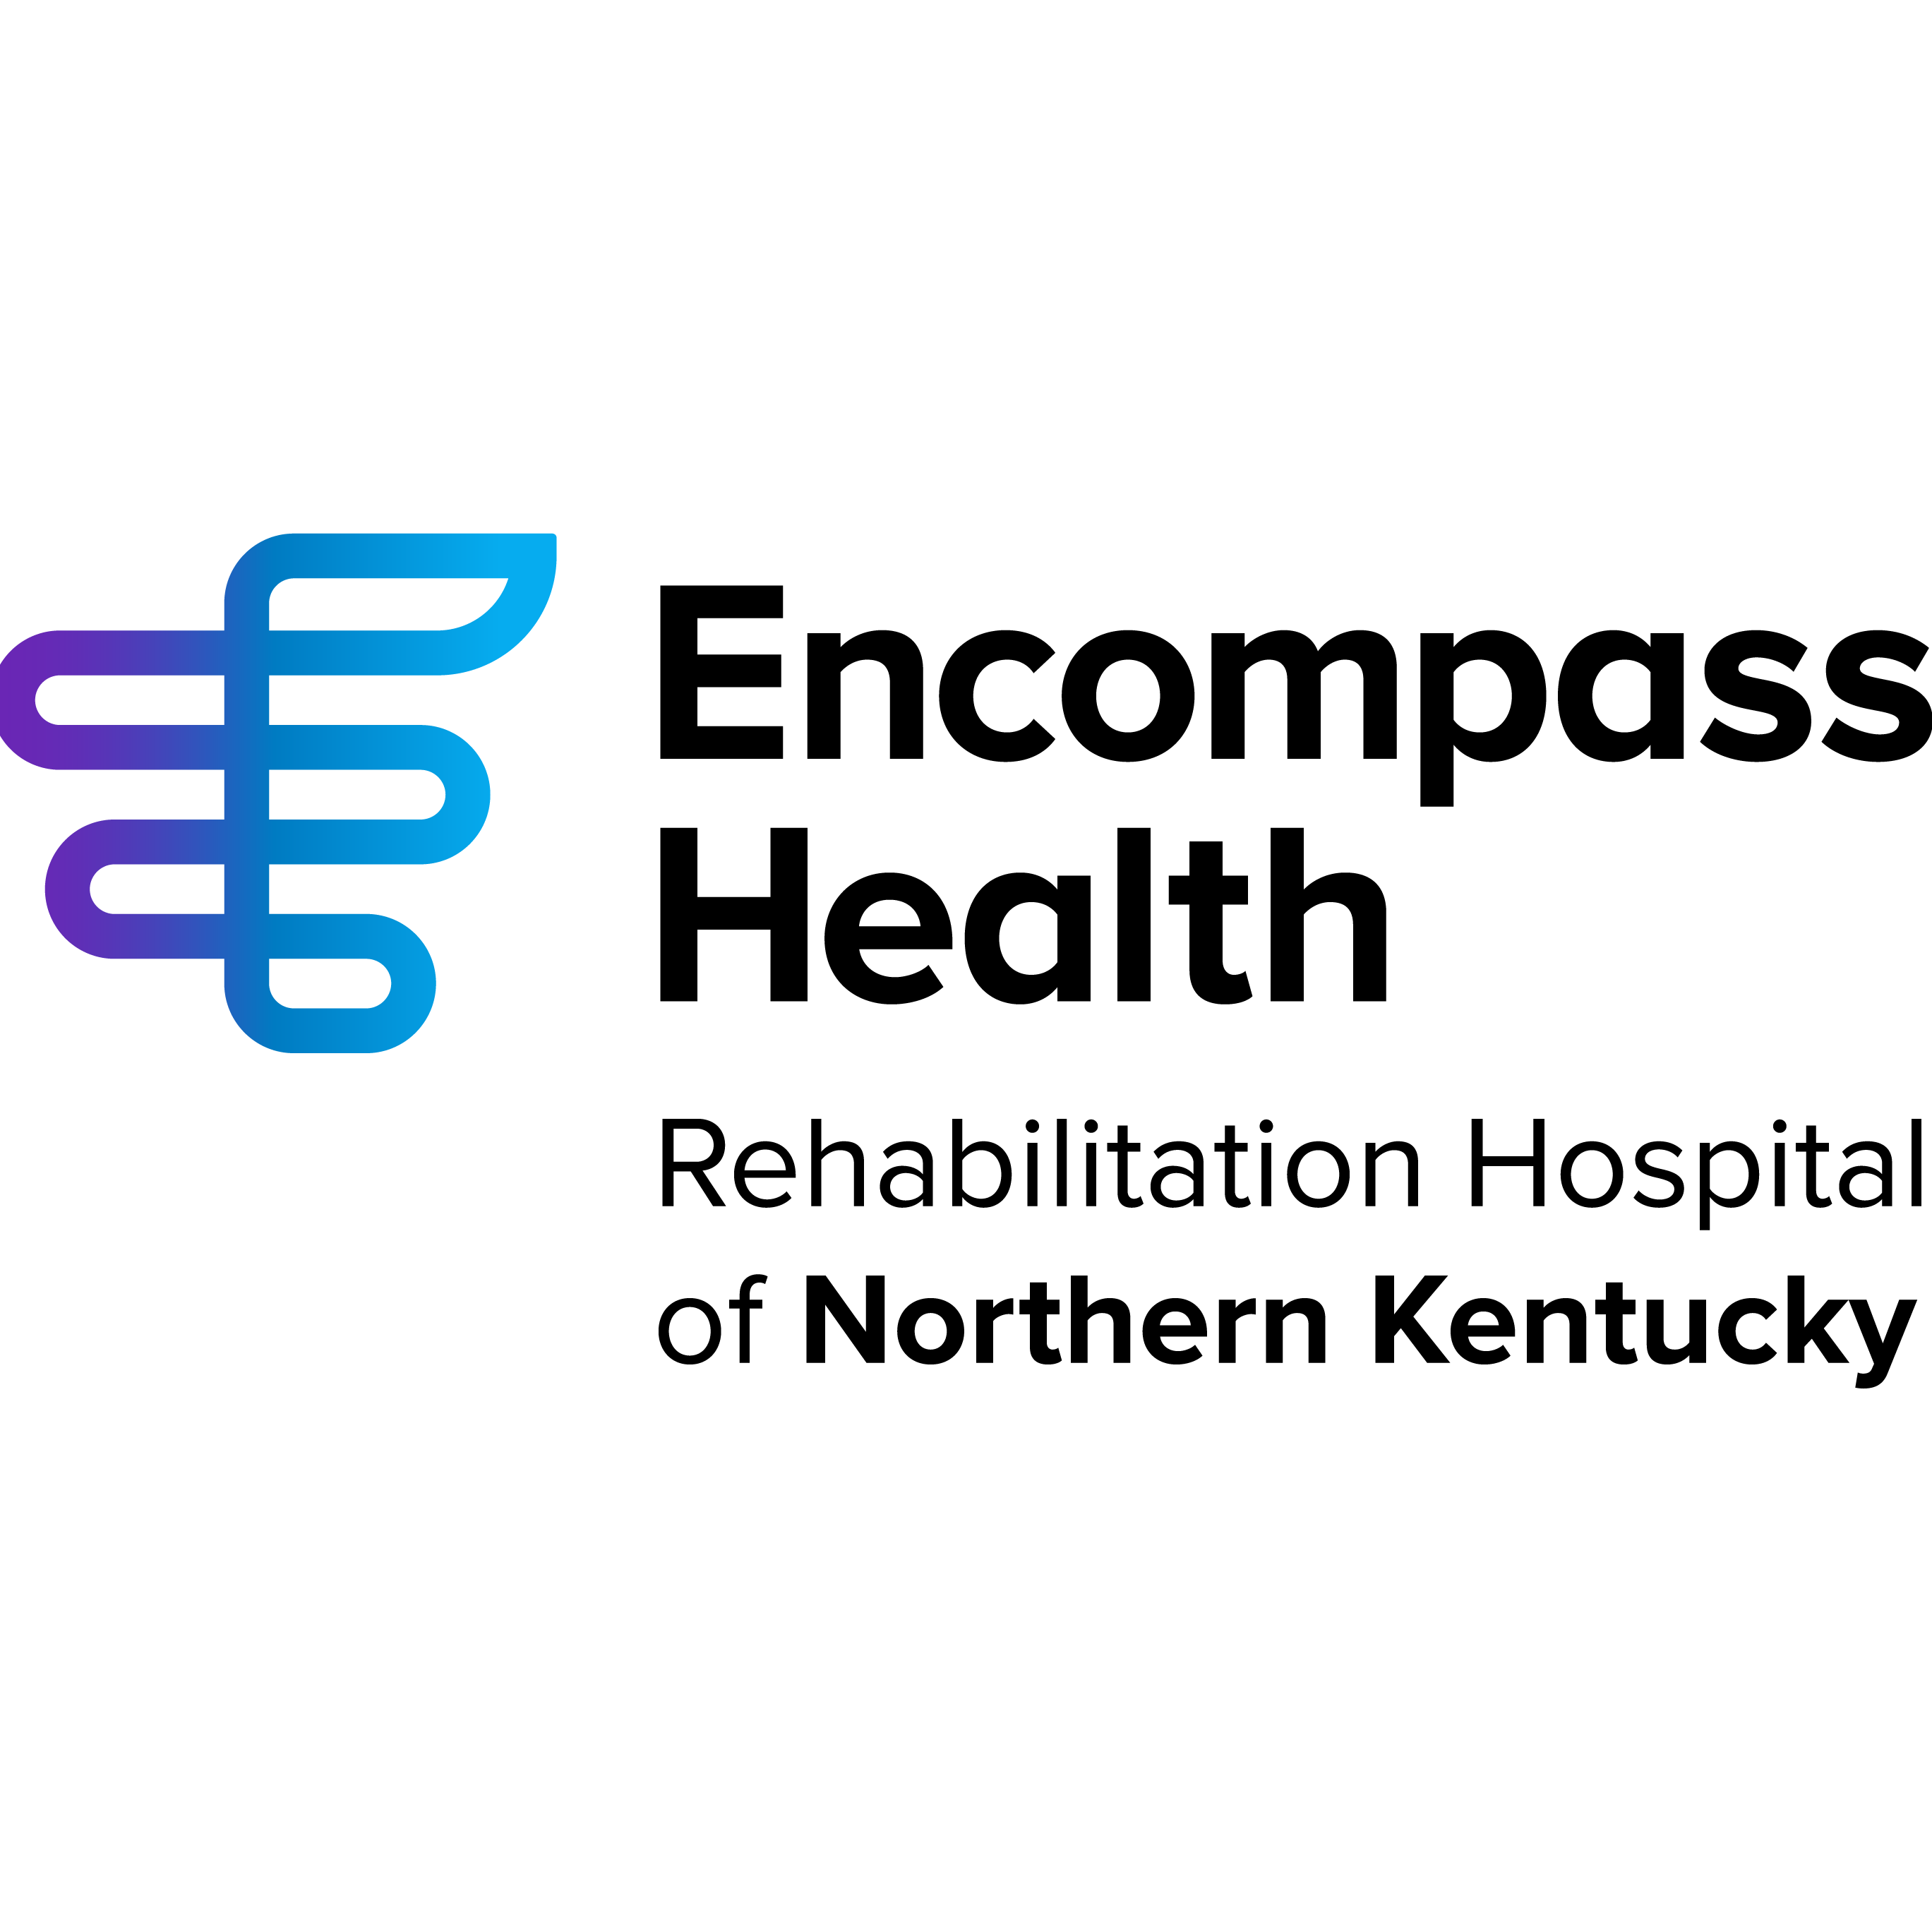 Encompass Health Rehabilitation Hospital of Northern Kentucky